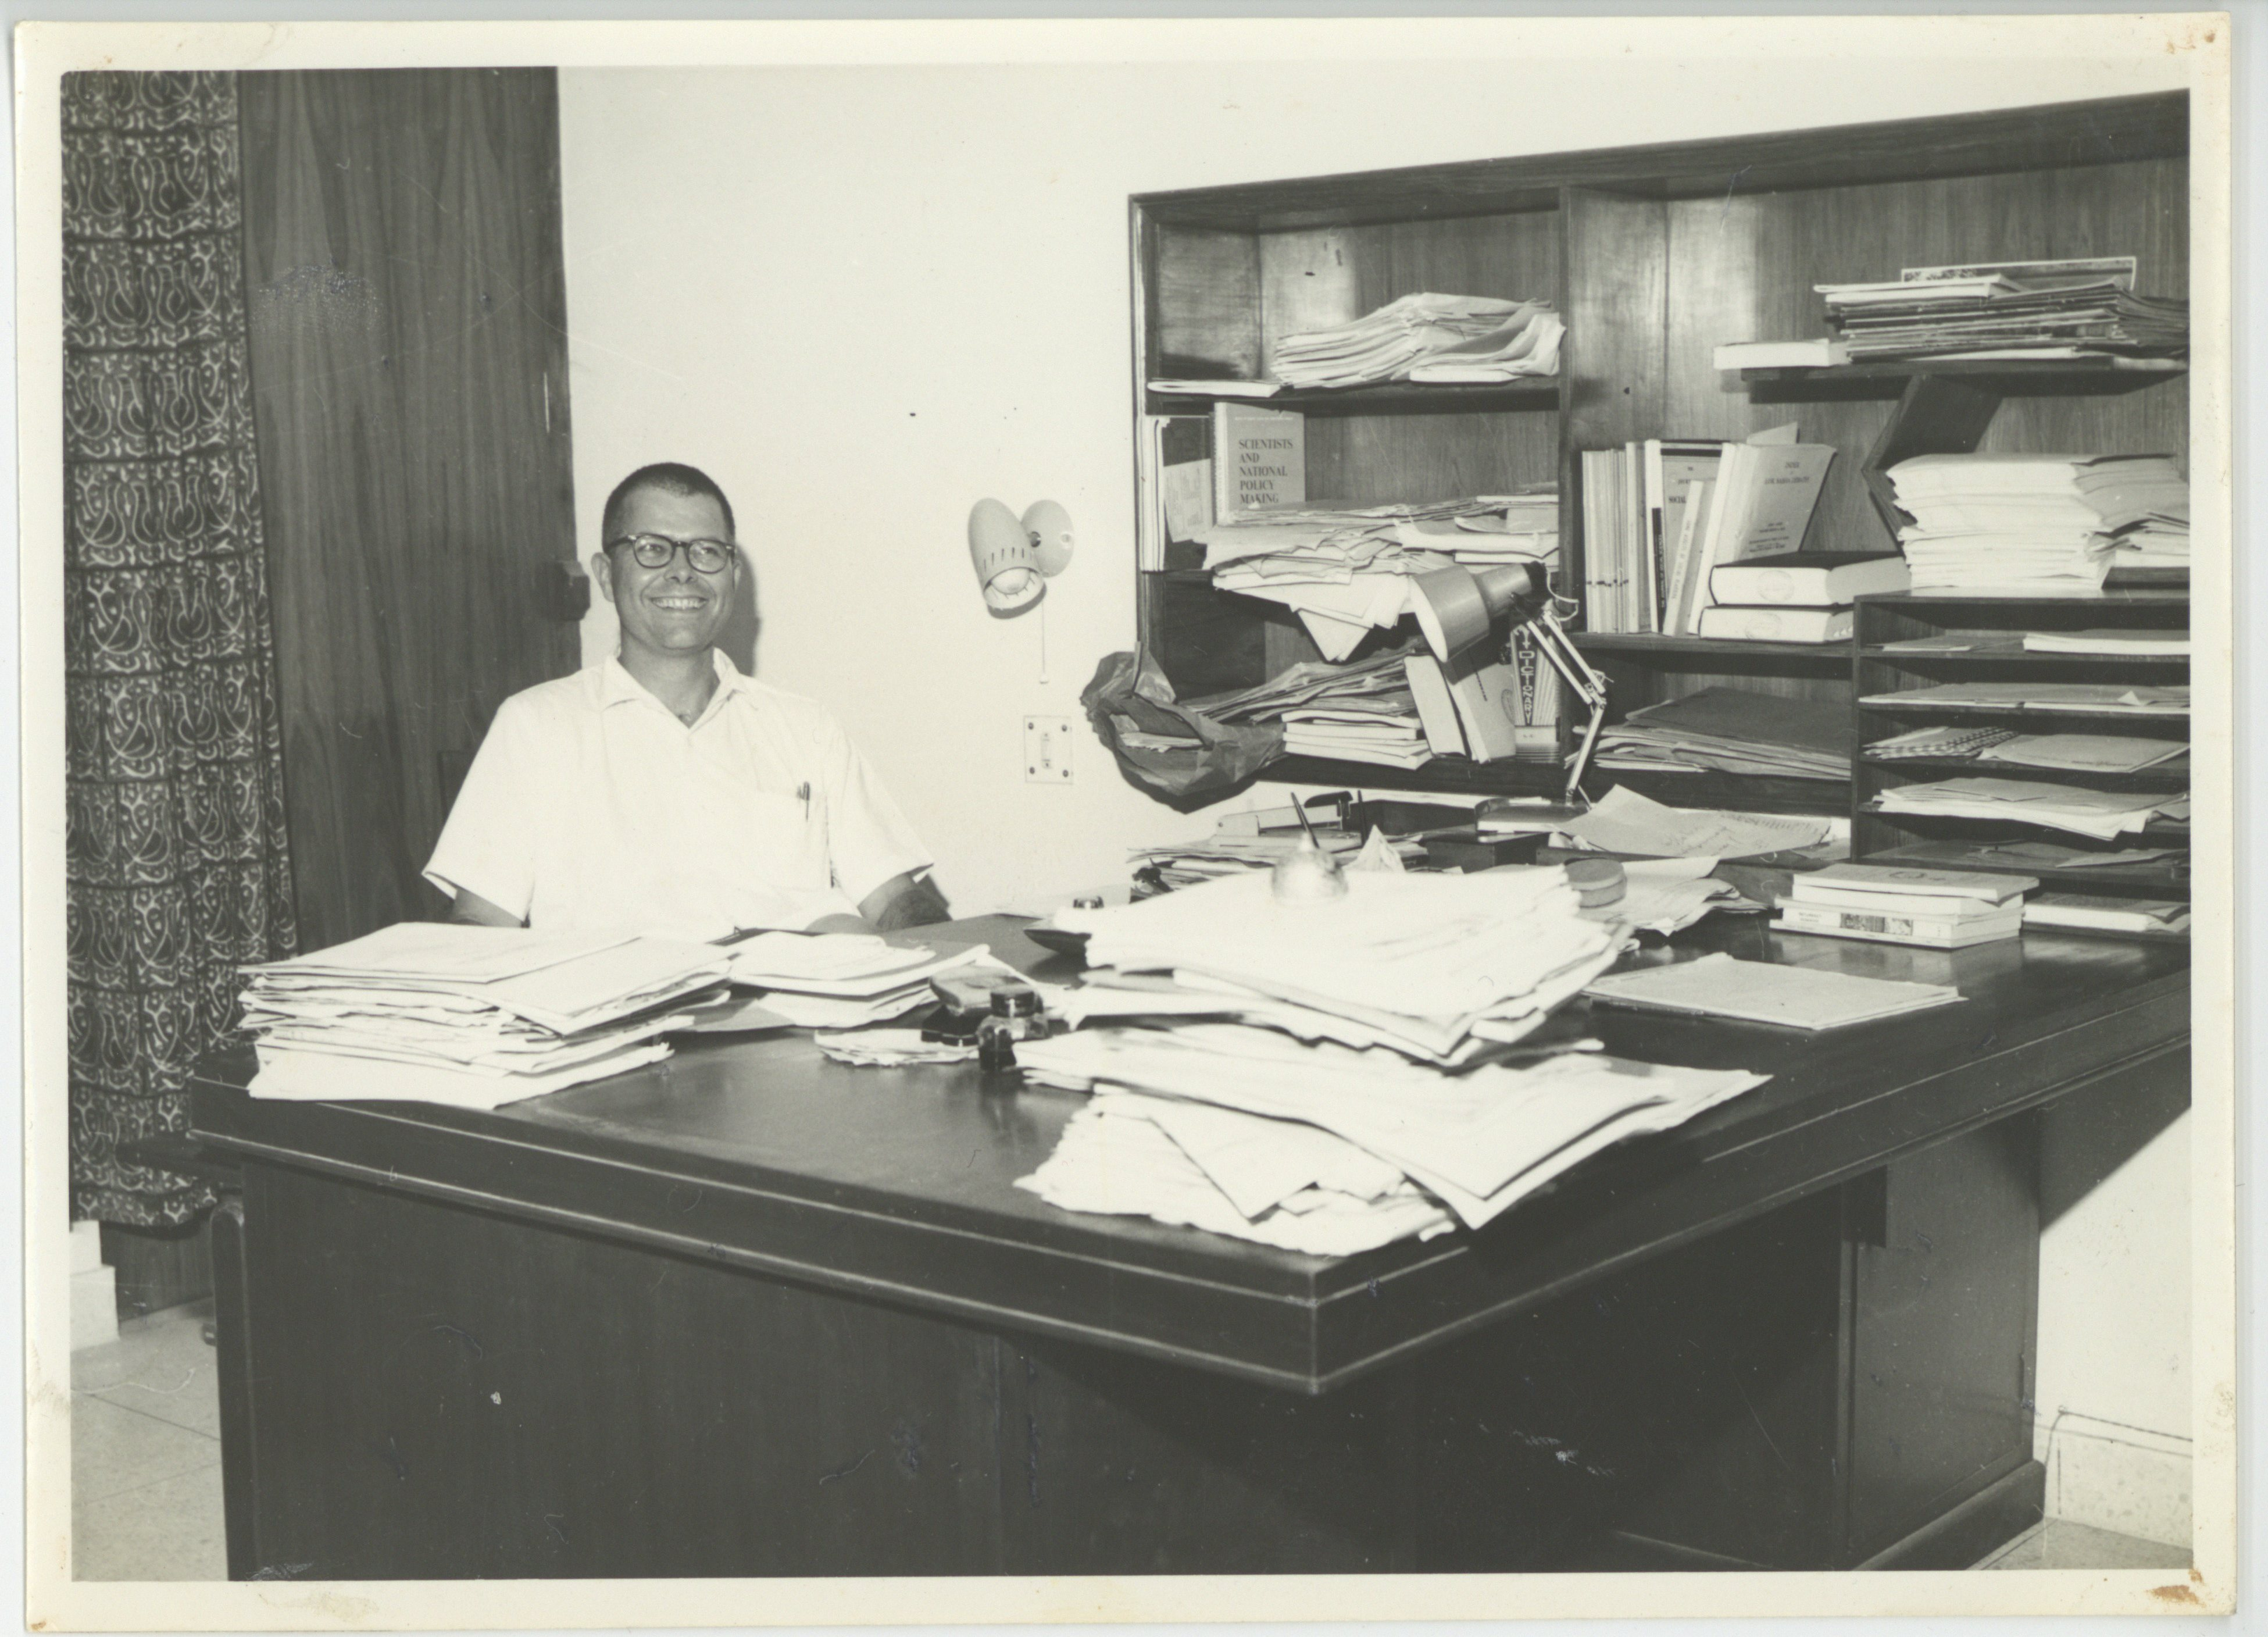 Image of Ward Morehouse at his desk in the Educational Resources Center, New Delhi, 1966